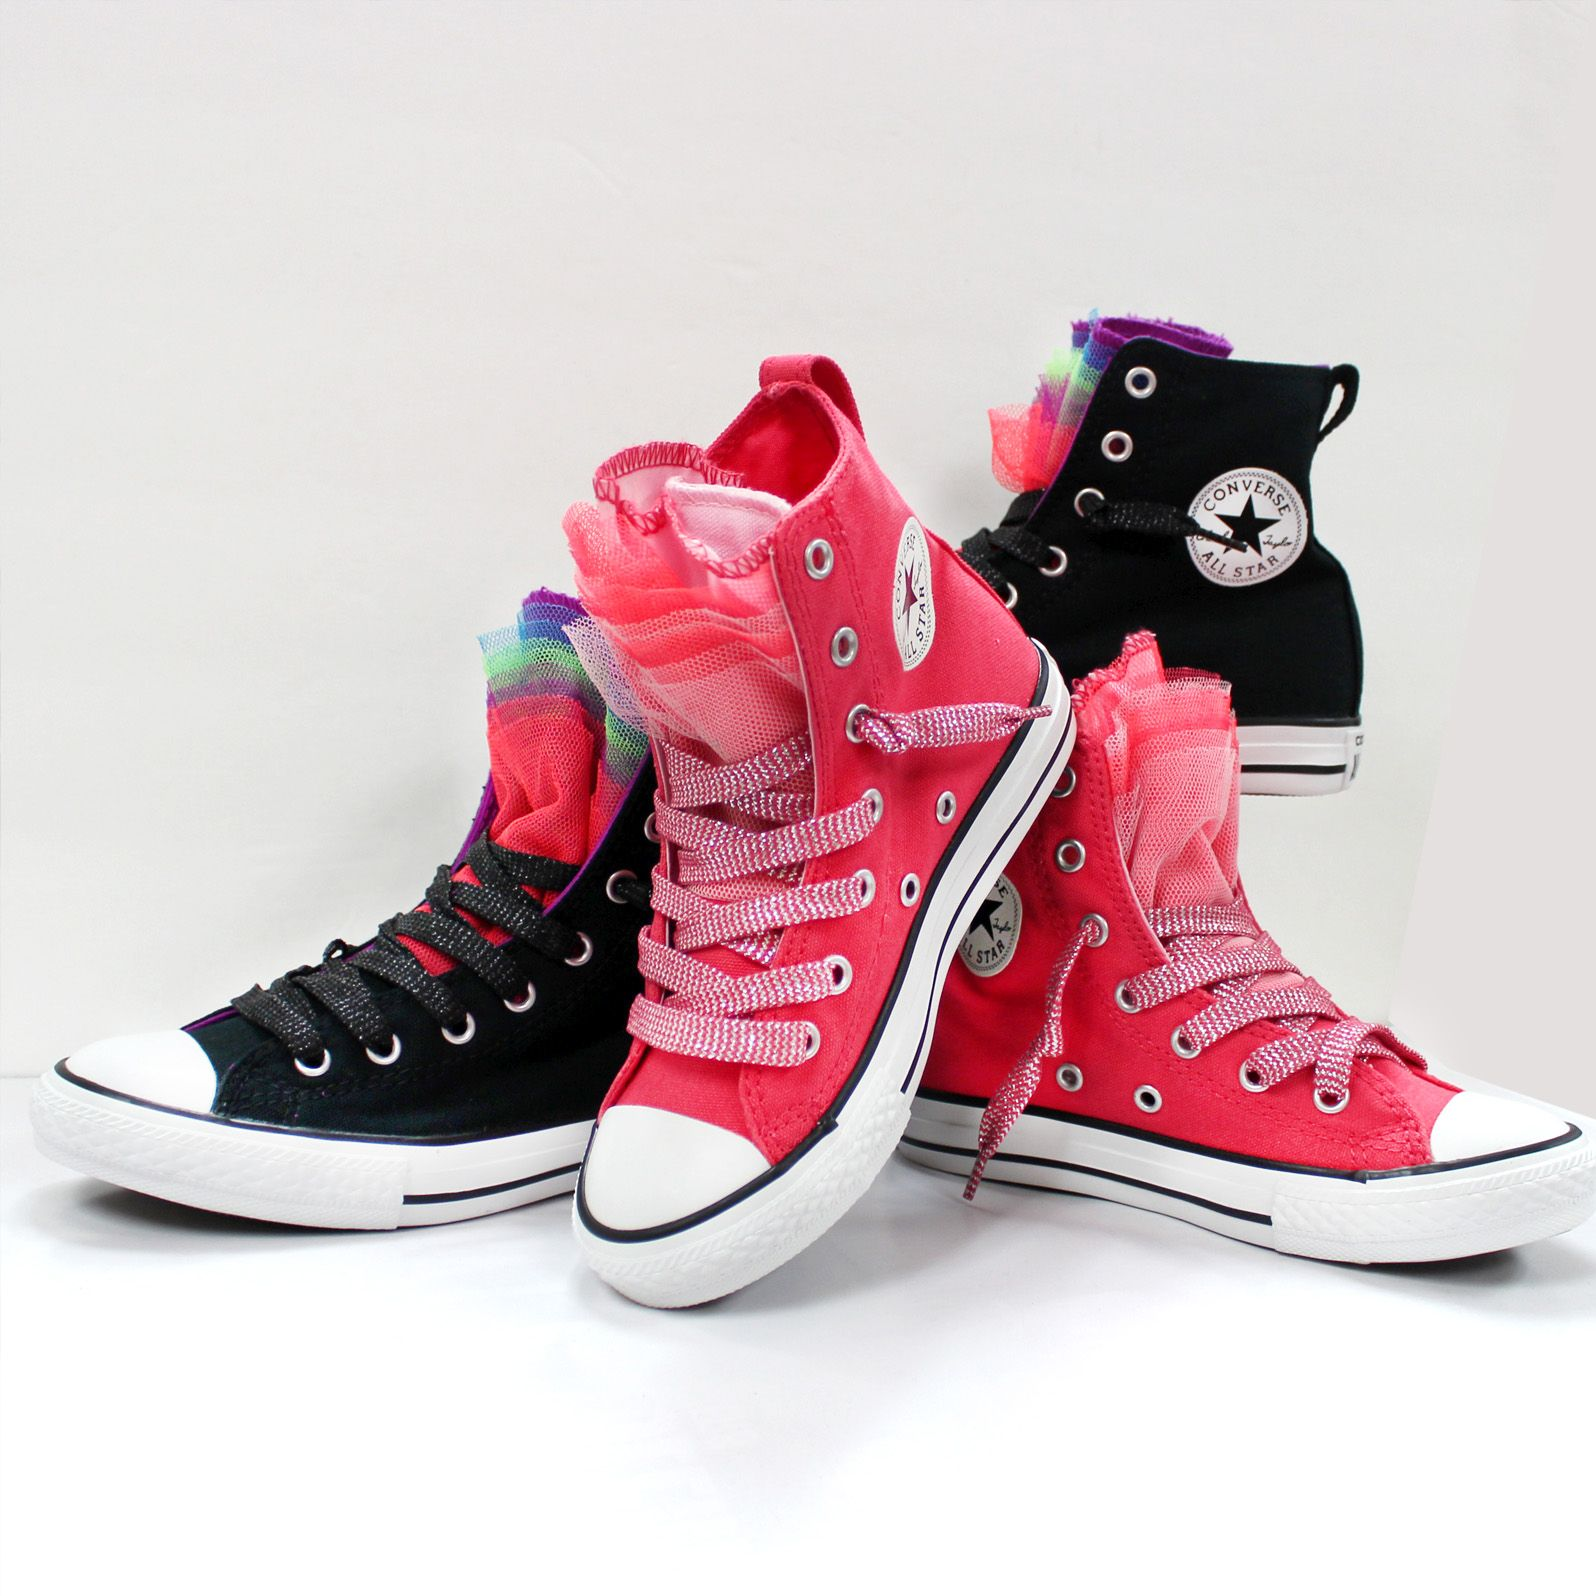 Shoes Are Boring Wear Converse Party Hi Sneakers Shopwss Chucks Converse Sneakers Top Sneakers